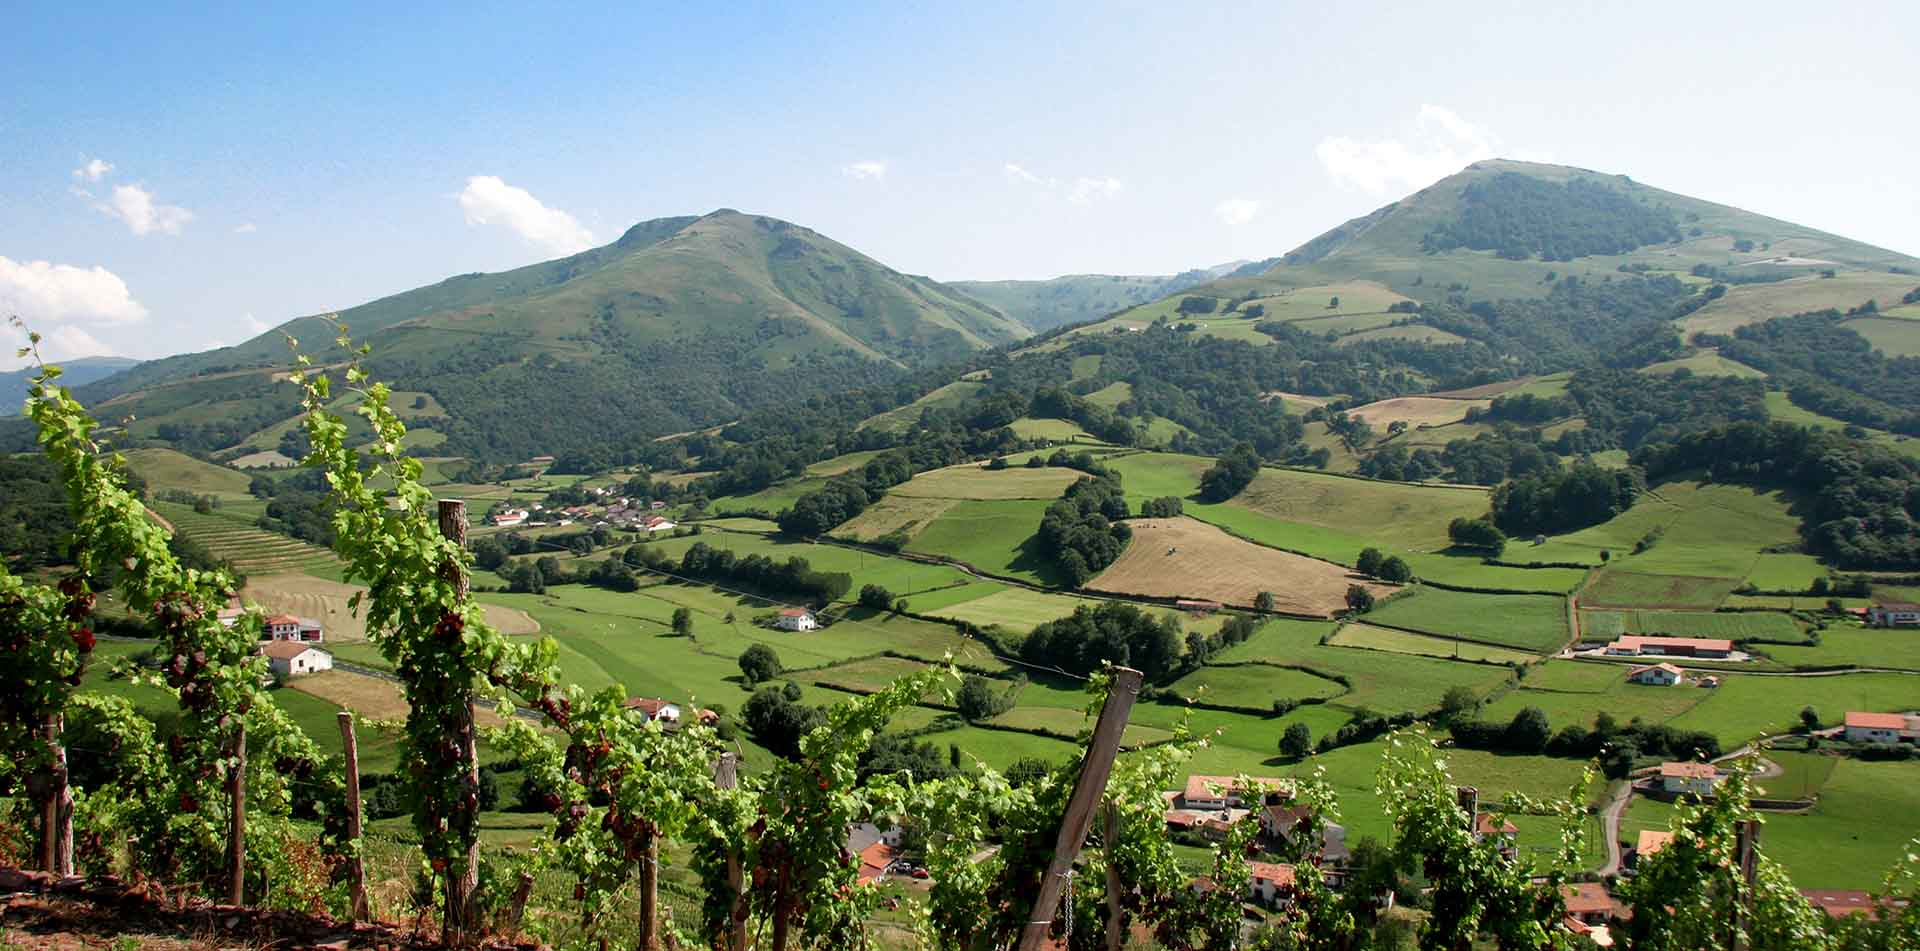 Countryside of Arce, Basque Pyrenees, Spain & France